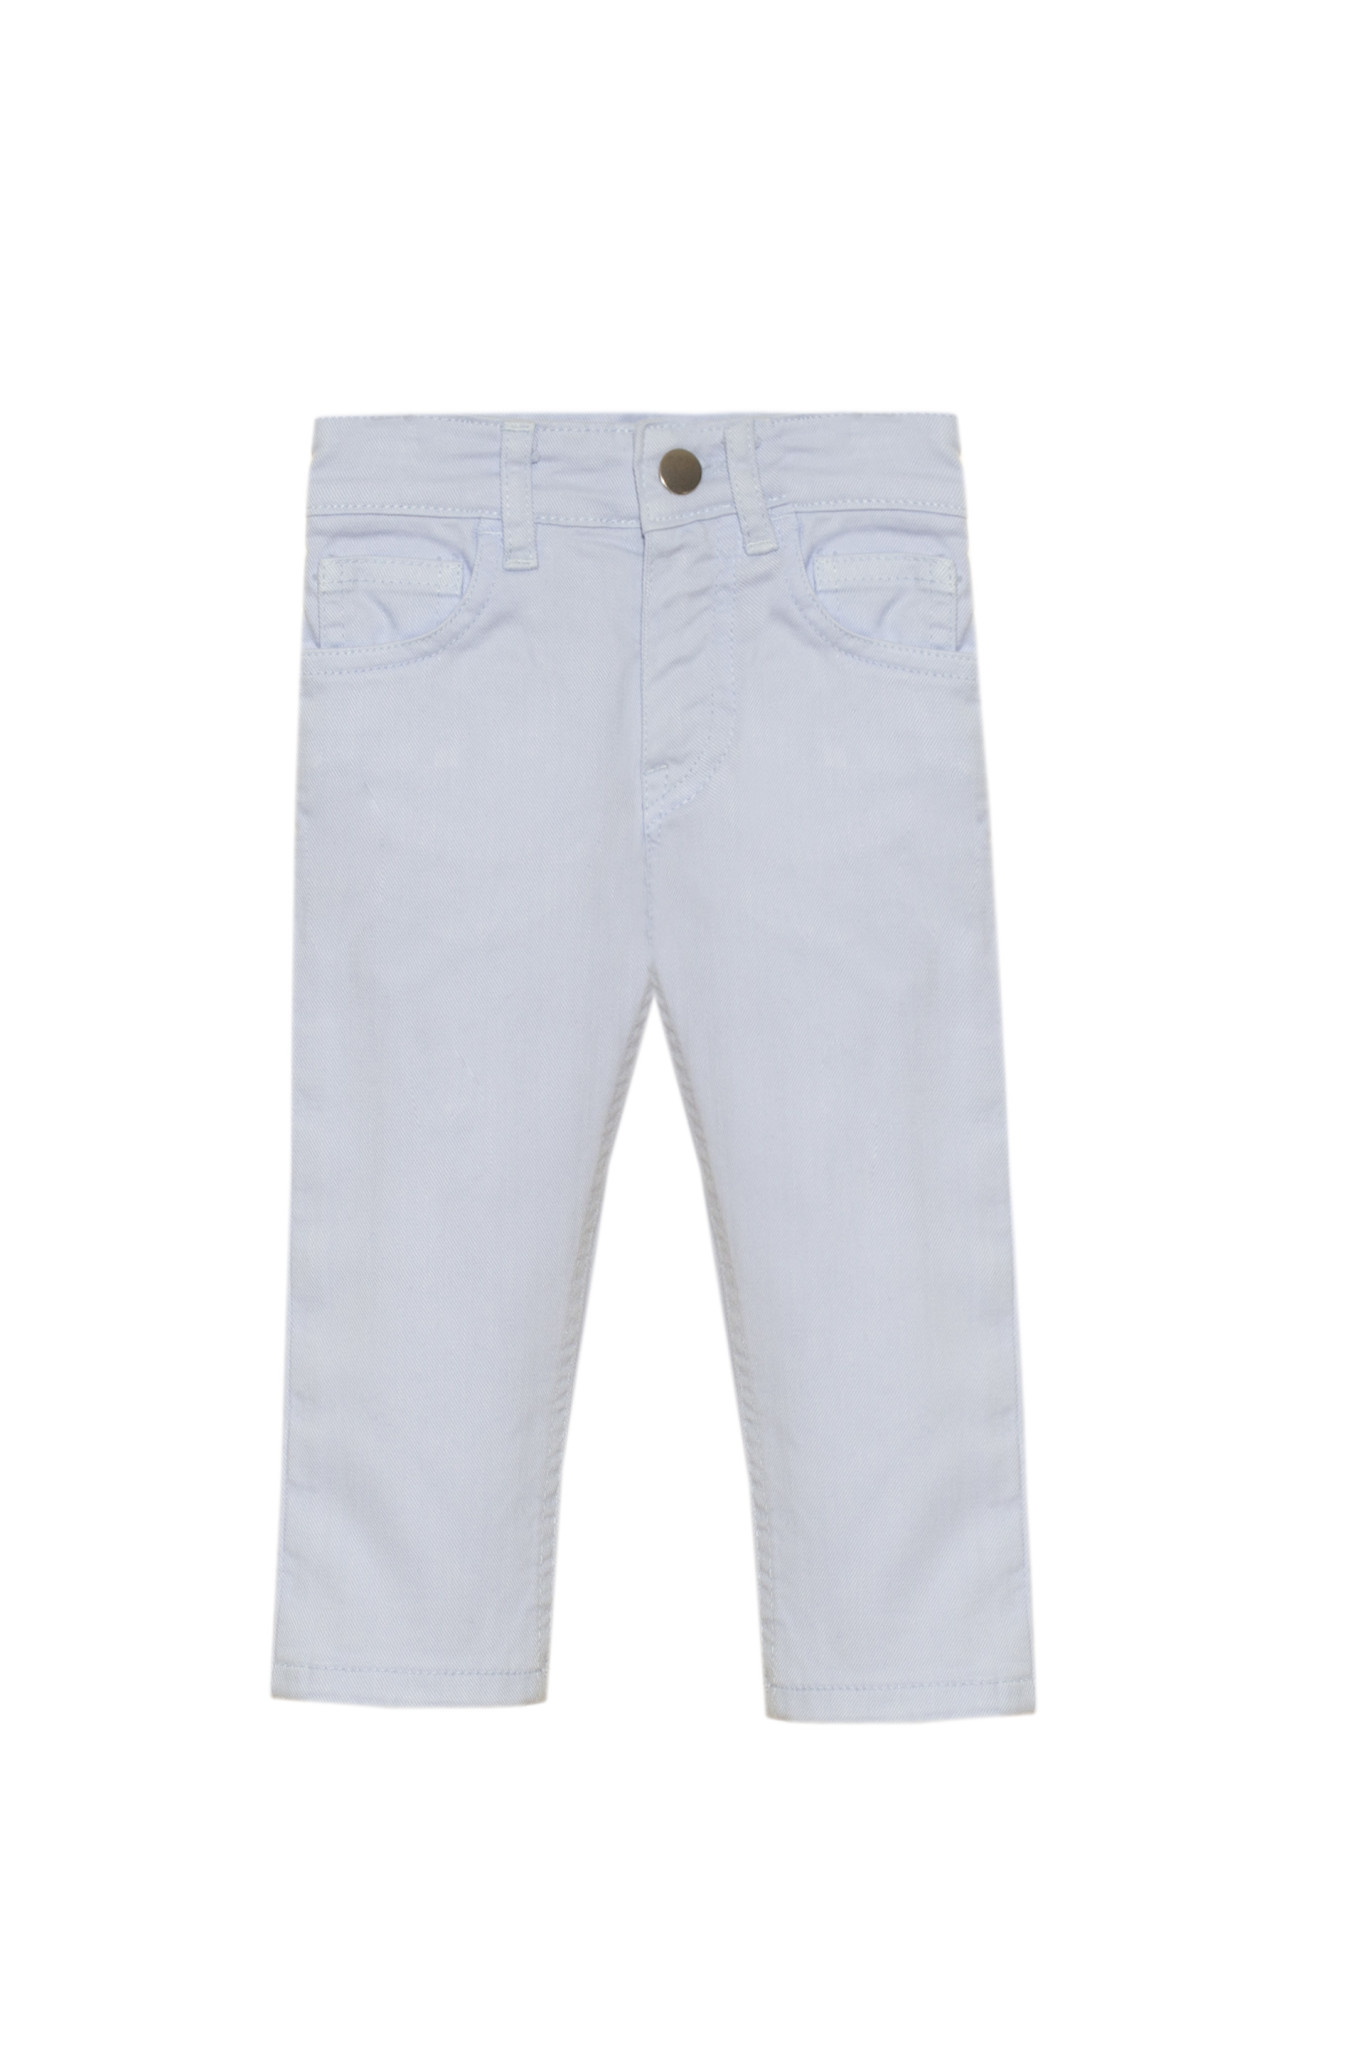 Patachou Patachou  Soft Pale Blue Jeans